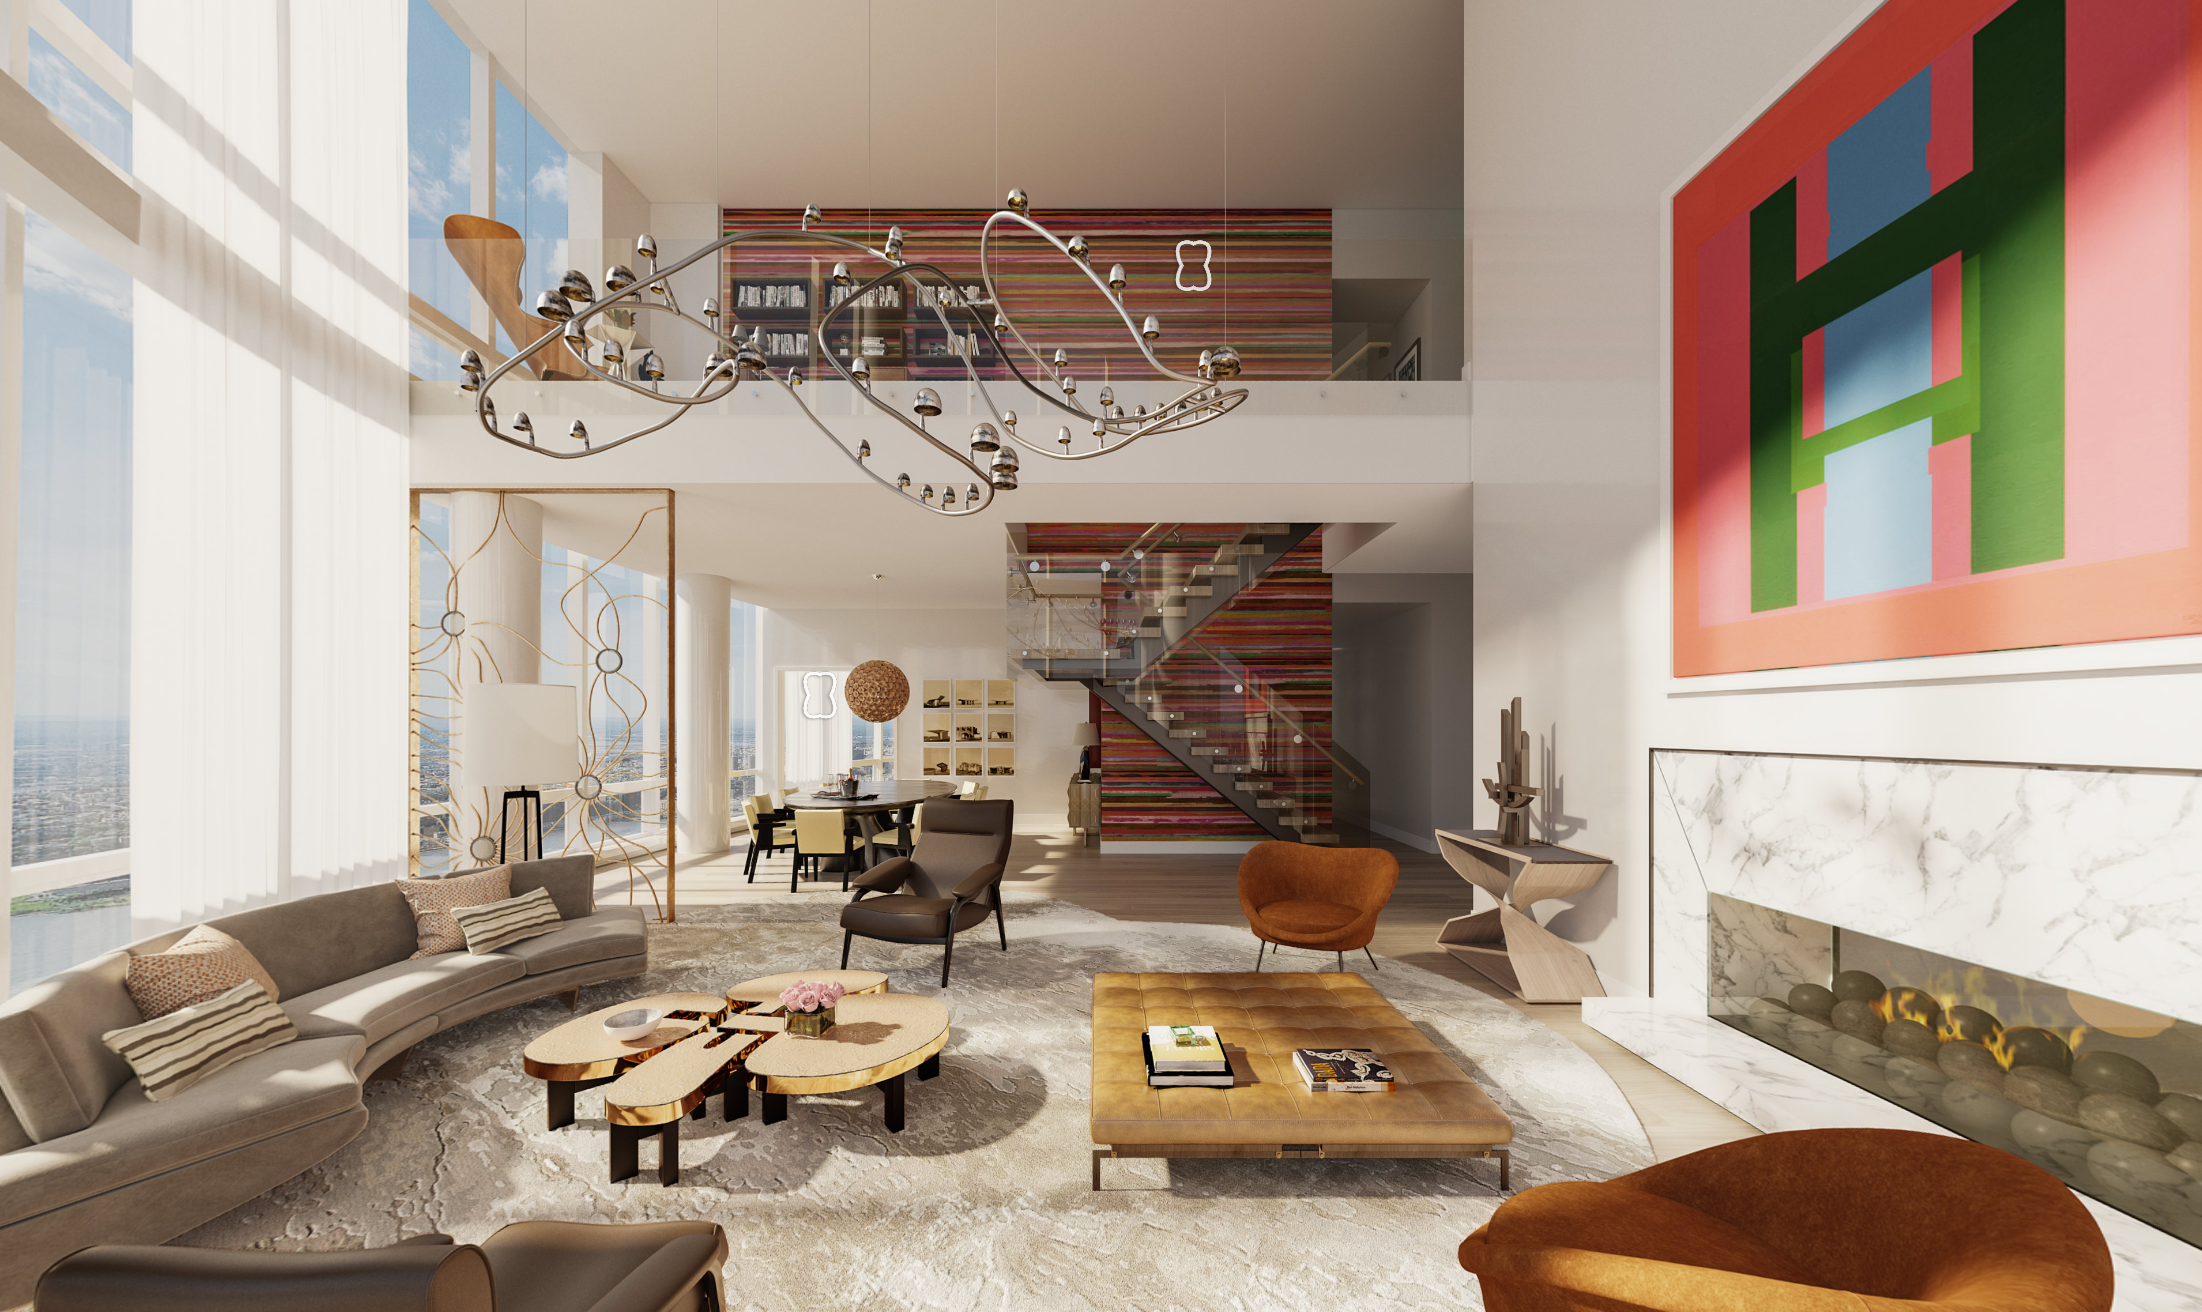 Take A VR Tour Of Penthouse 88B At The Diller Scofidio + Renfro & Rockwell Group Designed Fifteen Hudson Yards Penthouse